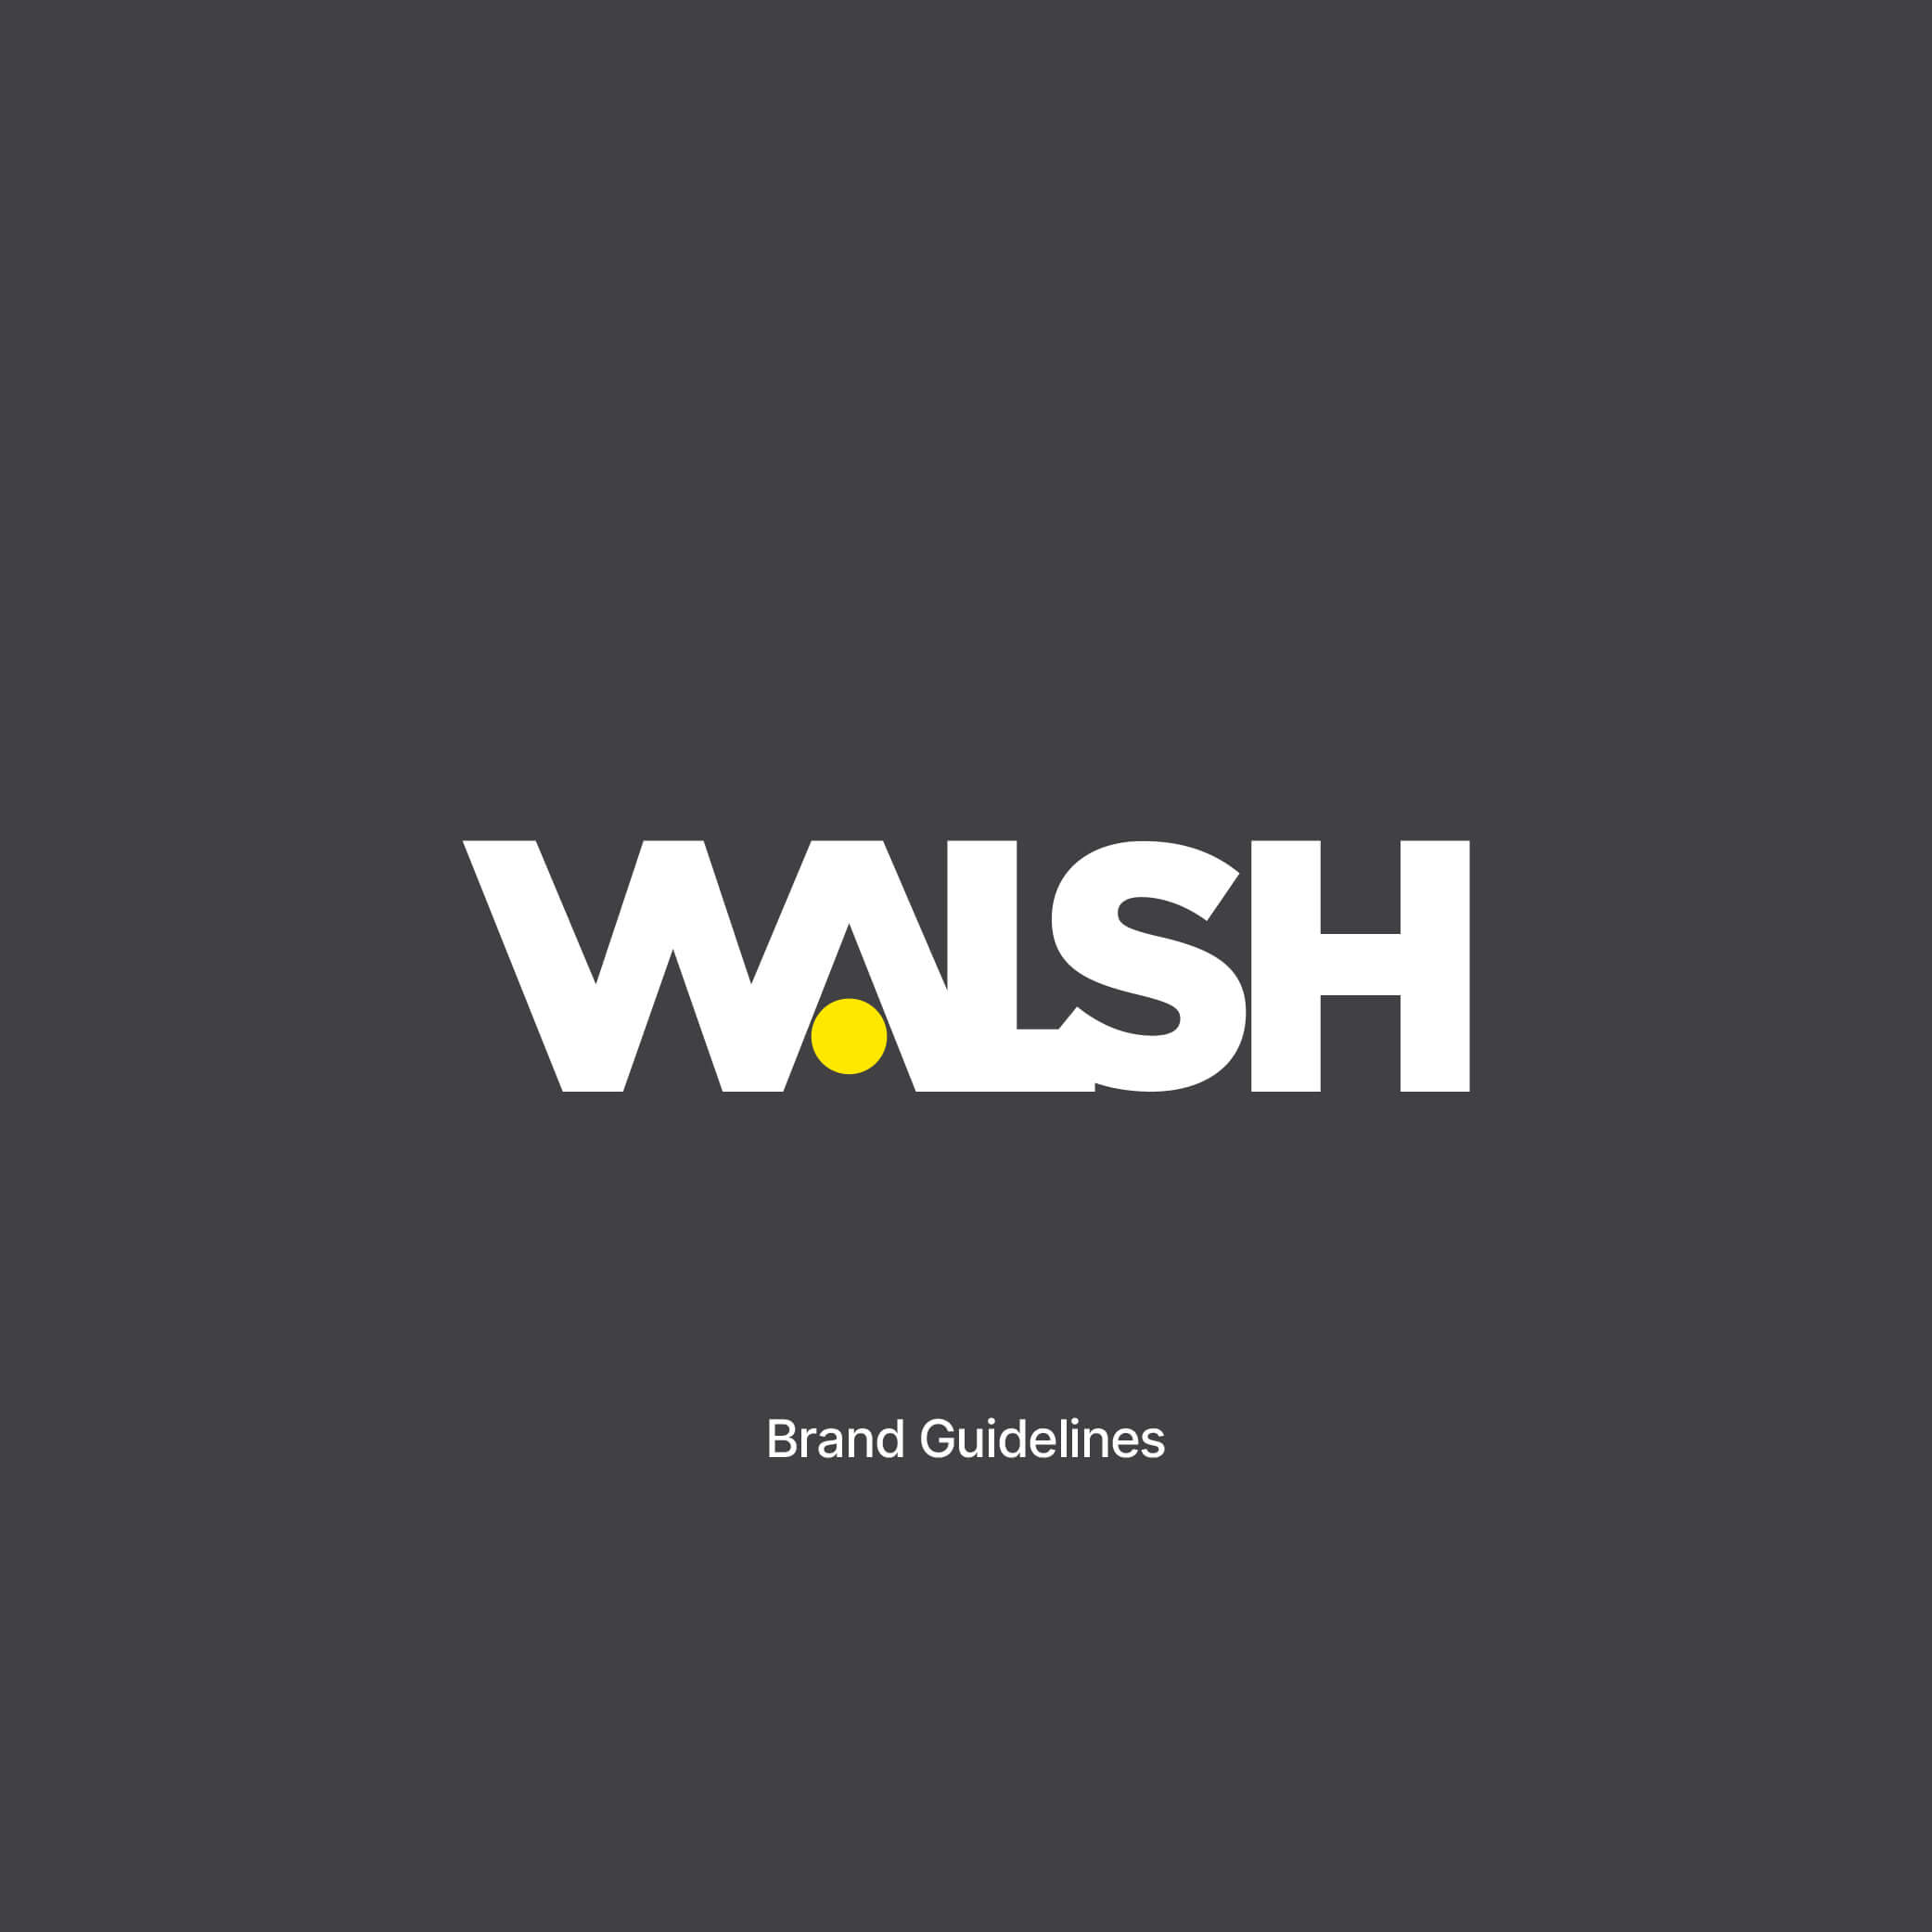 Walsh-Brand-Guidelines